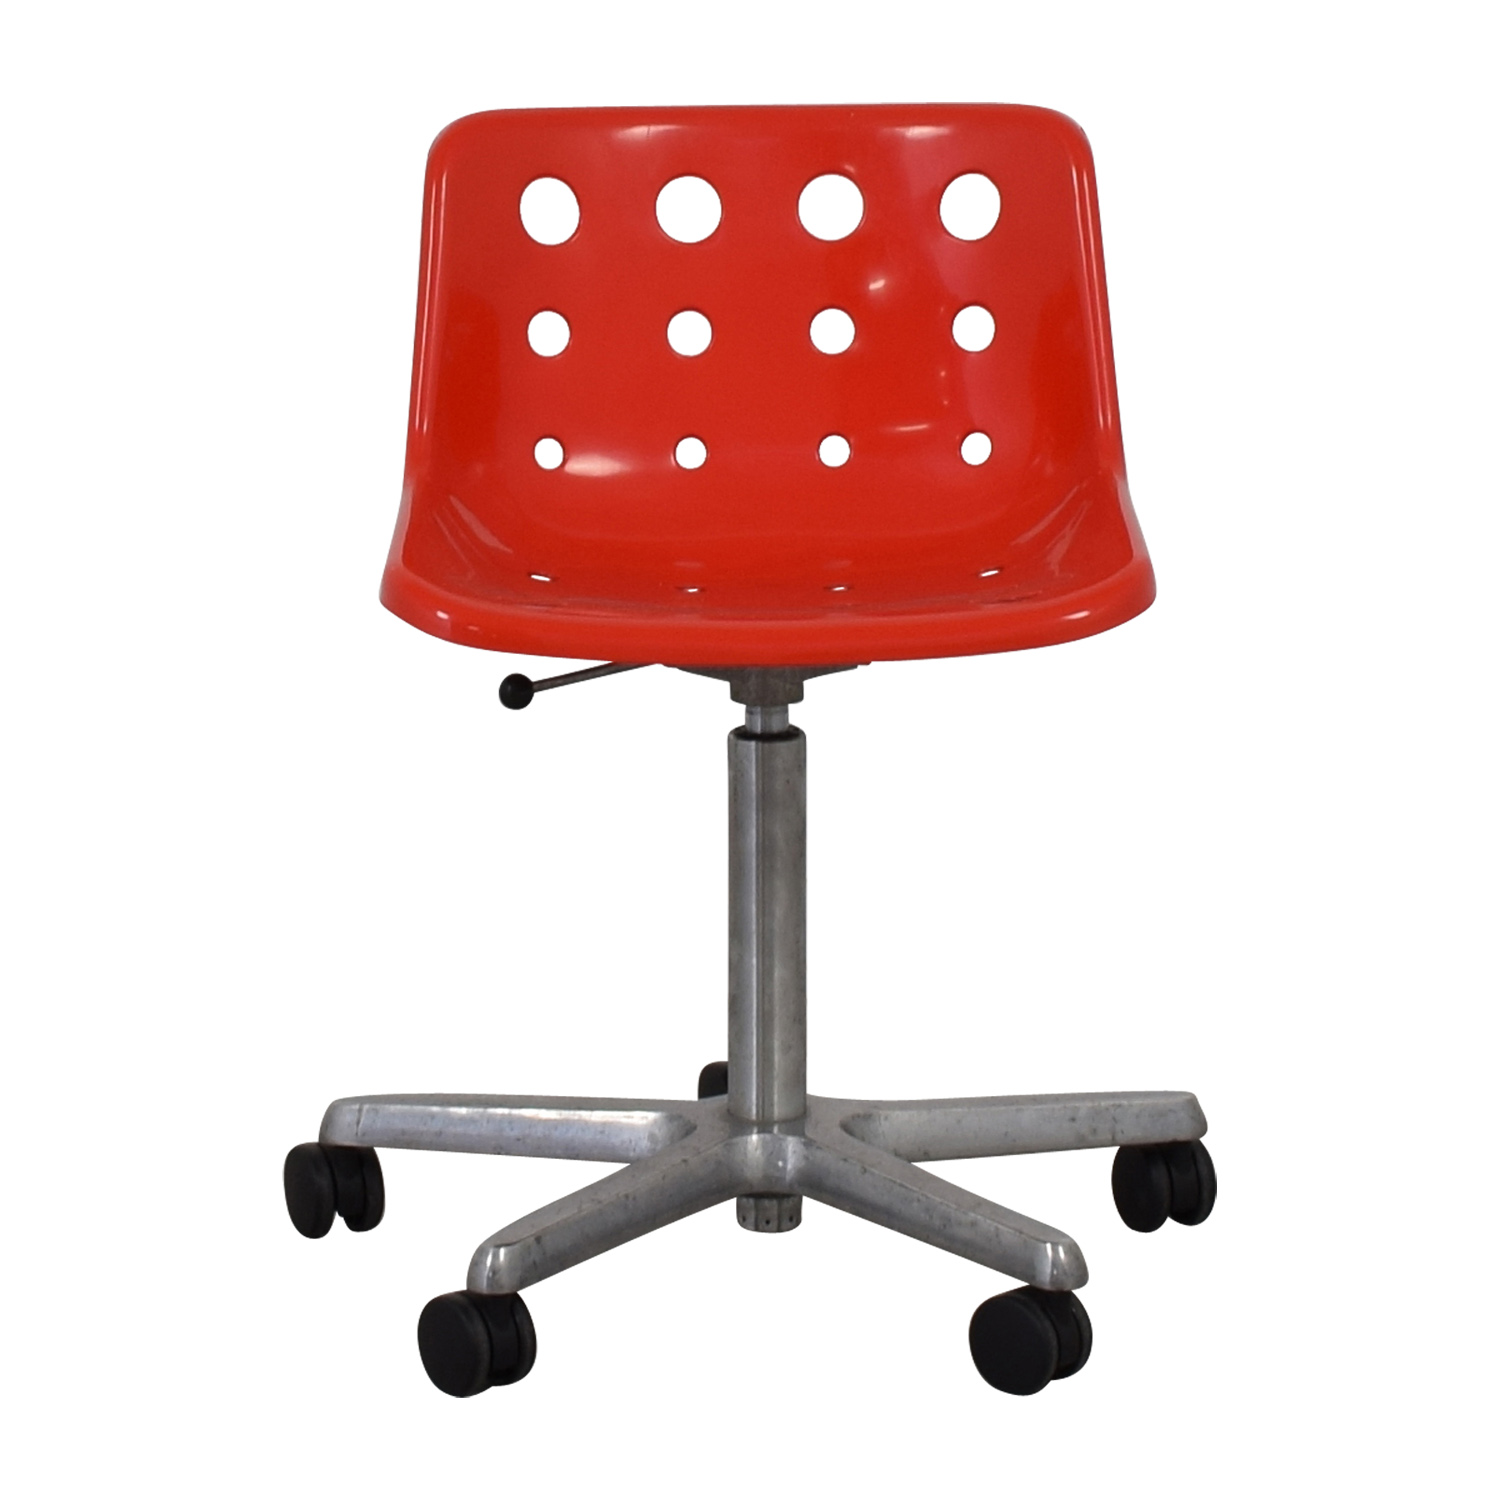 Robin Day Robin Day 1973 Polo 5 Star Red Chair on Castors second hand